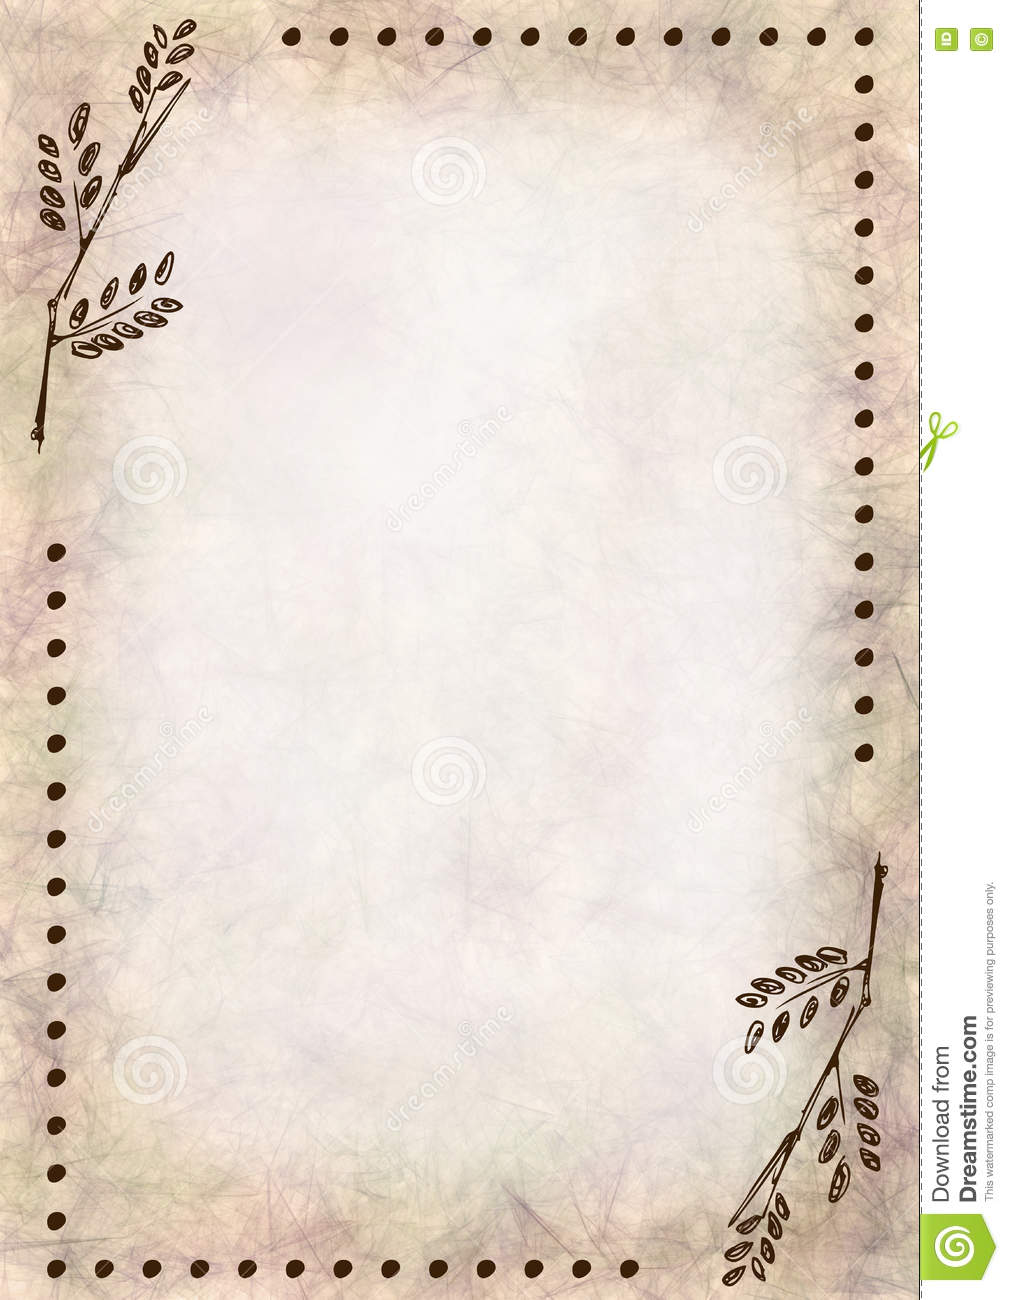 hand drawn textured floral backgroundcrumpled paper with leaves vintage template for letter or